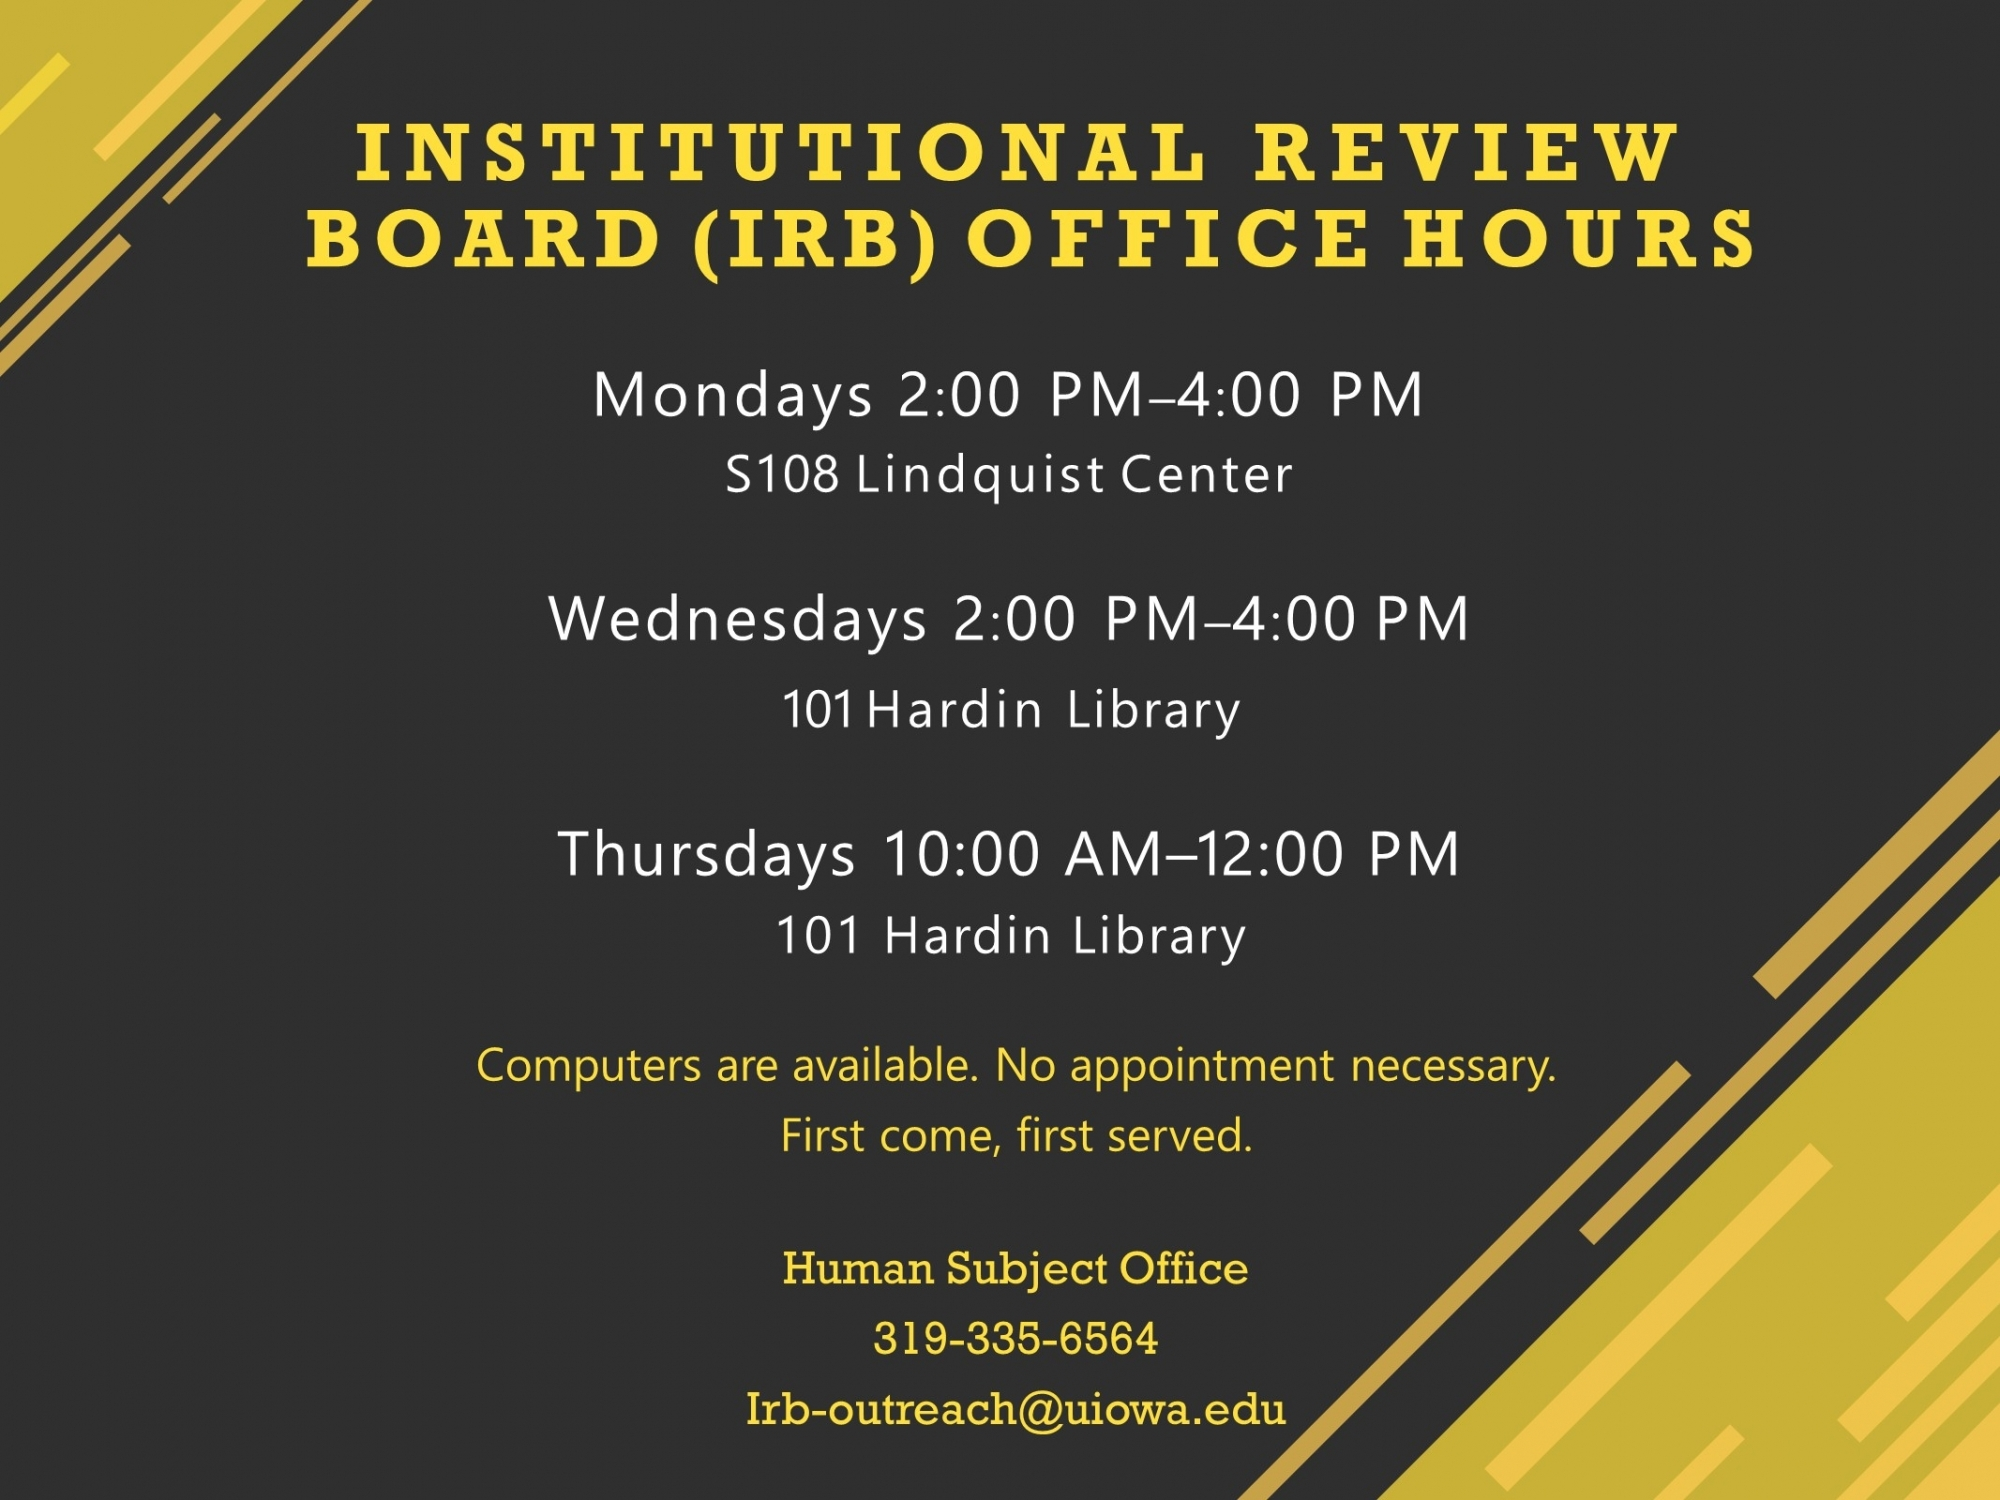 IRB office hours